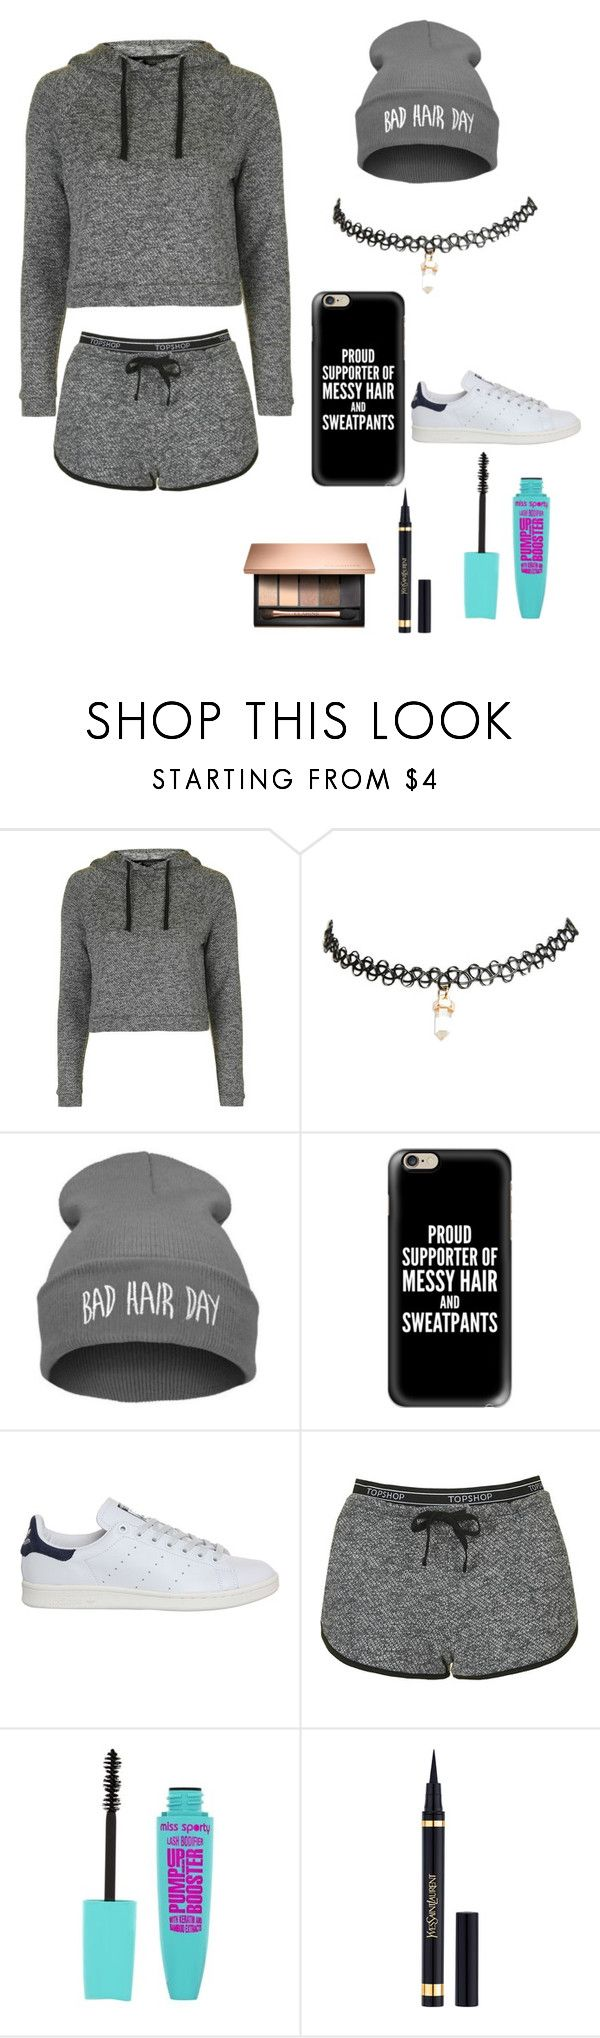 """Very Lazy Day"" by rianmoreno ❤ liked on Polyvore featuring interior, interiors, interior design, home, home decor, interior decorating, Topshop, We..."